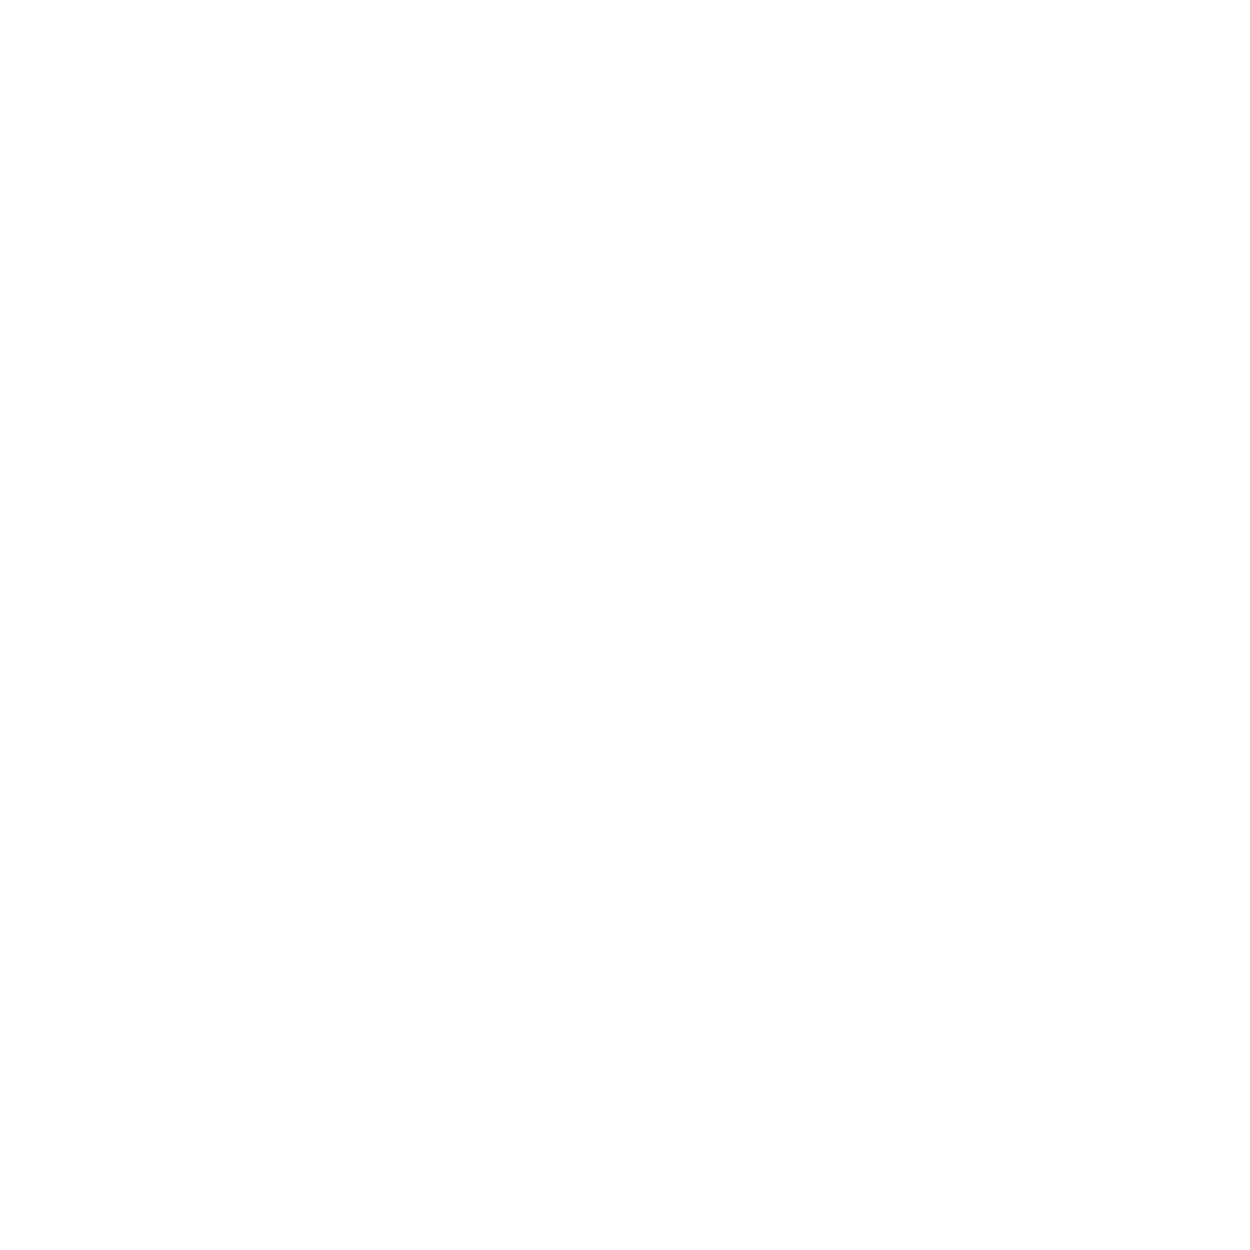 TAT Tiling Group Pty Ltd